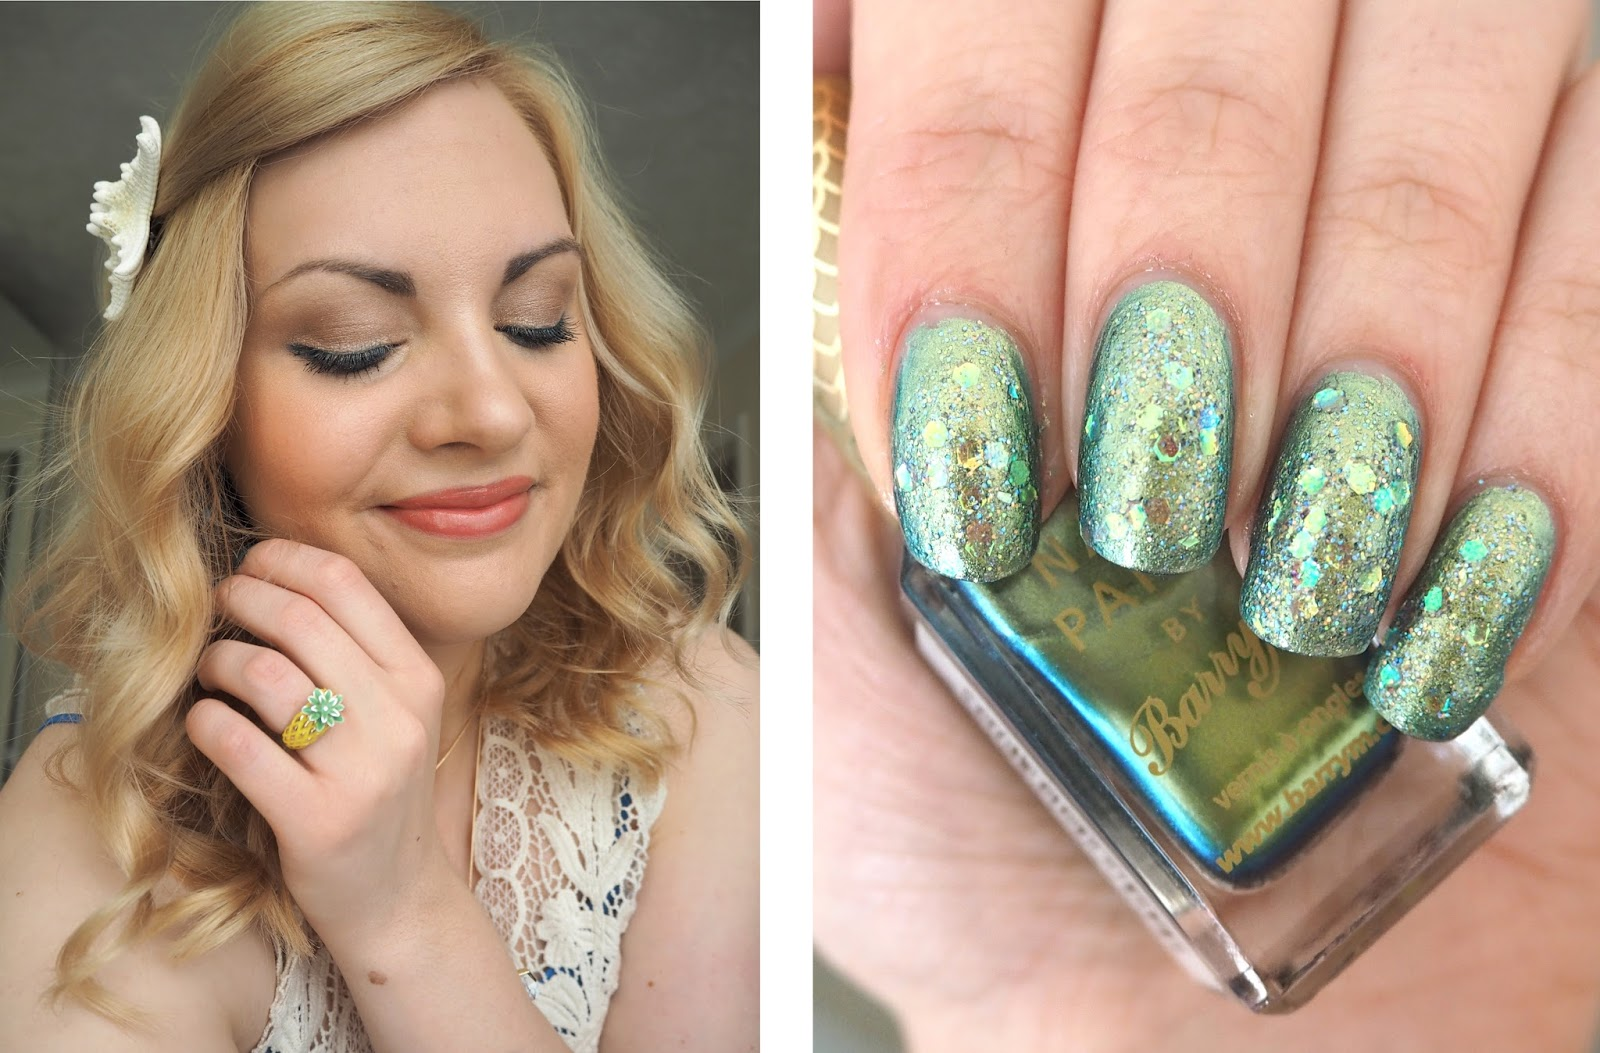 Mermaid Inspired Outfit, Mermaid Make Up Look, Mermaid Nails, Mermaid Accessories, Little Mermaid Ariel Style | Katie Kirk Loves Blog